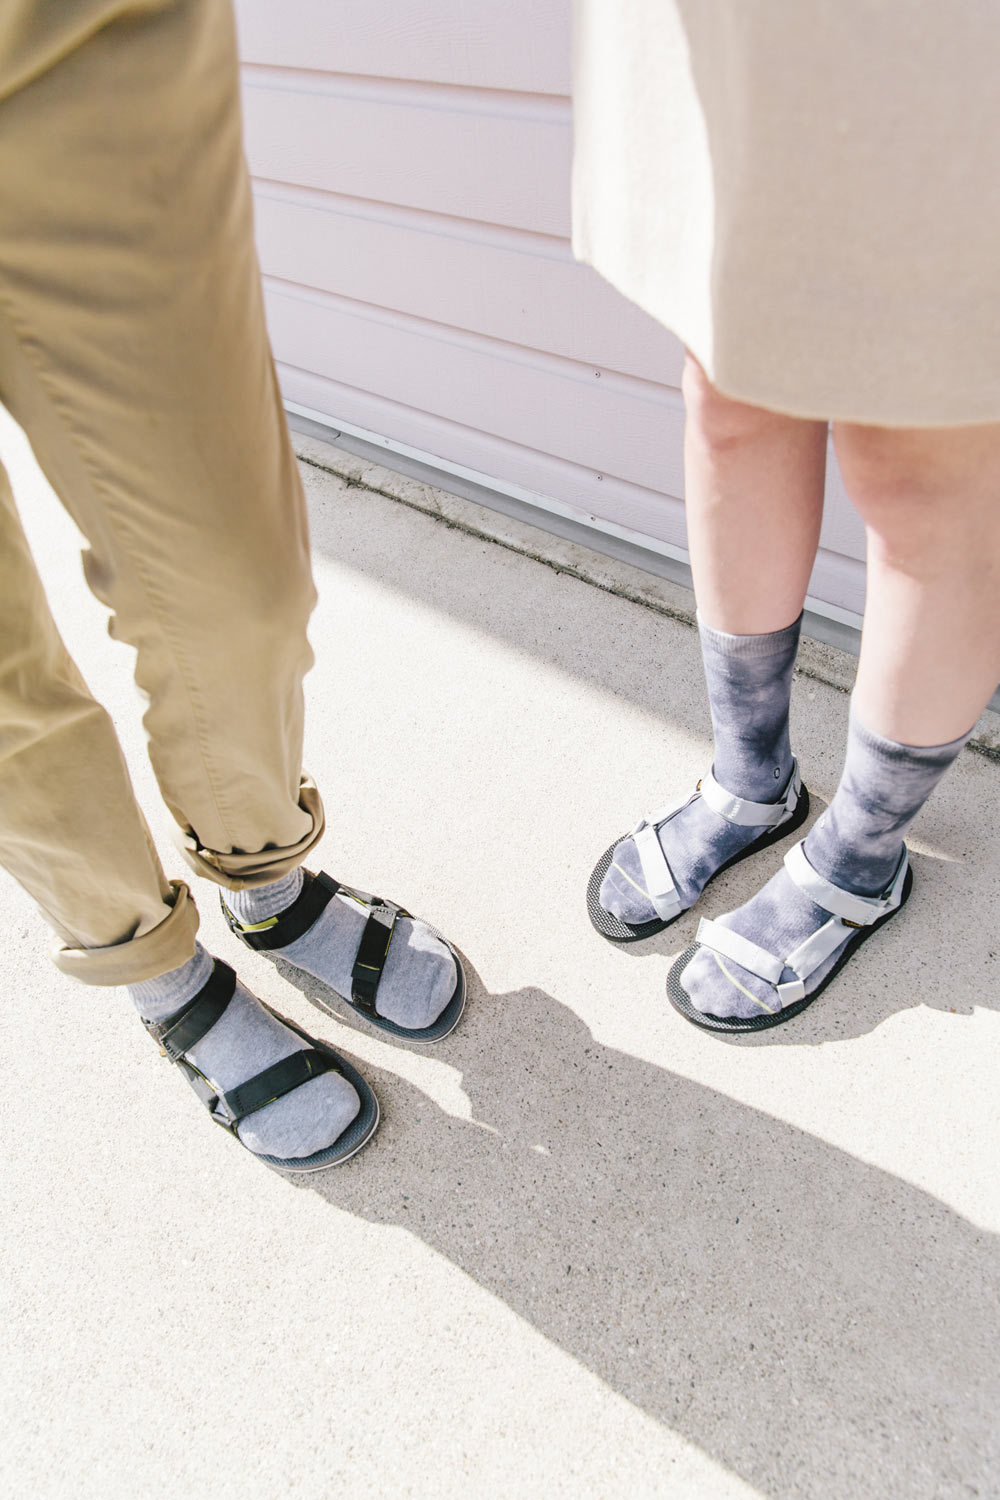 Creative Socks With Sandals Women Socks Amp Sandals Style Guide  Lookbook